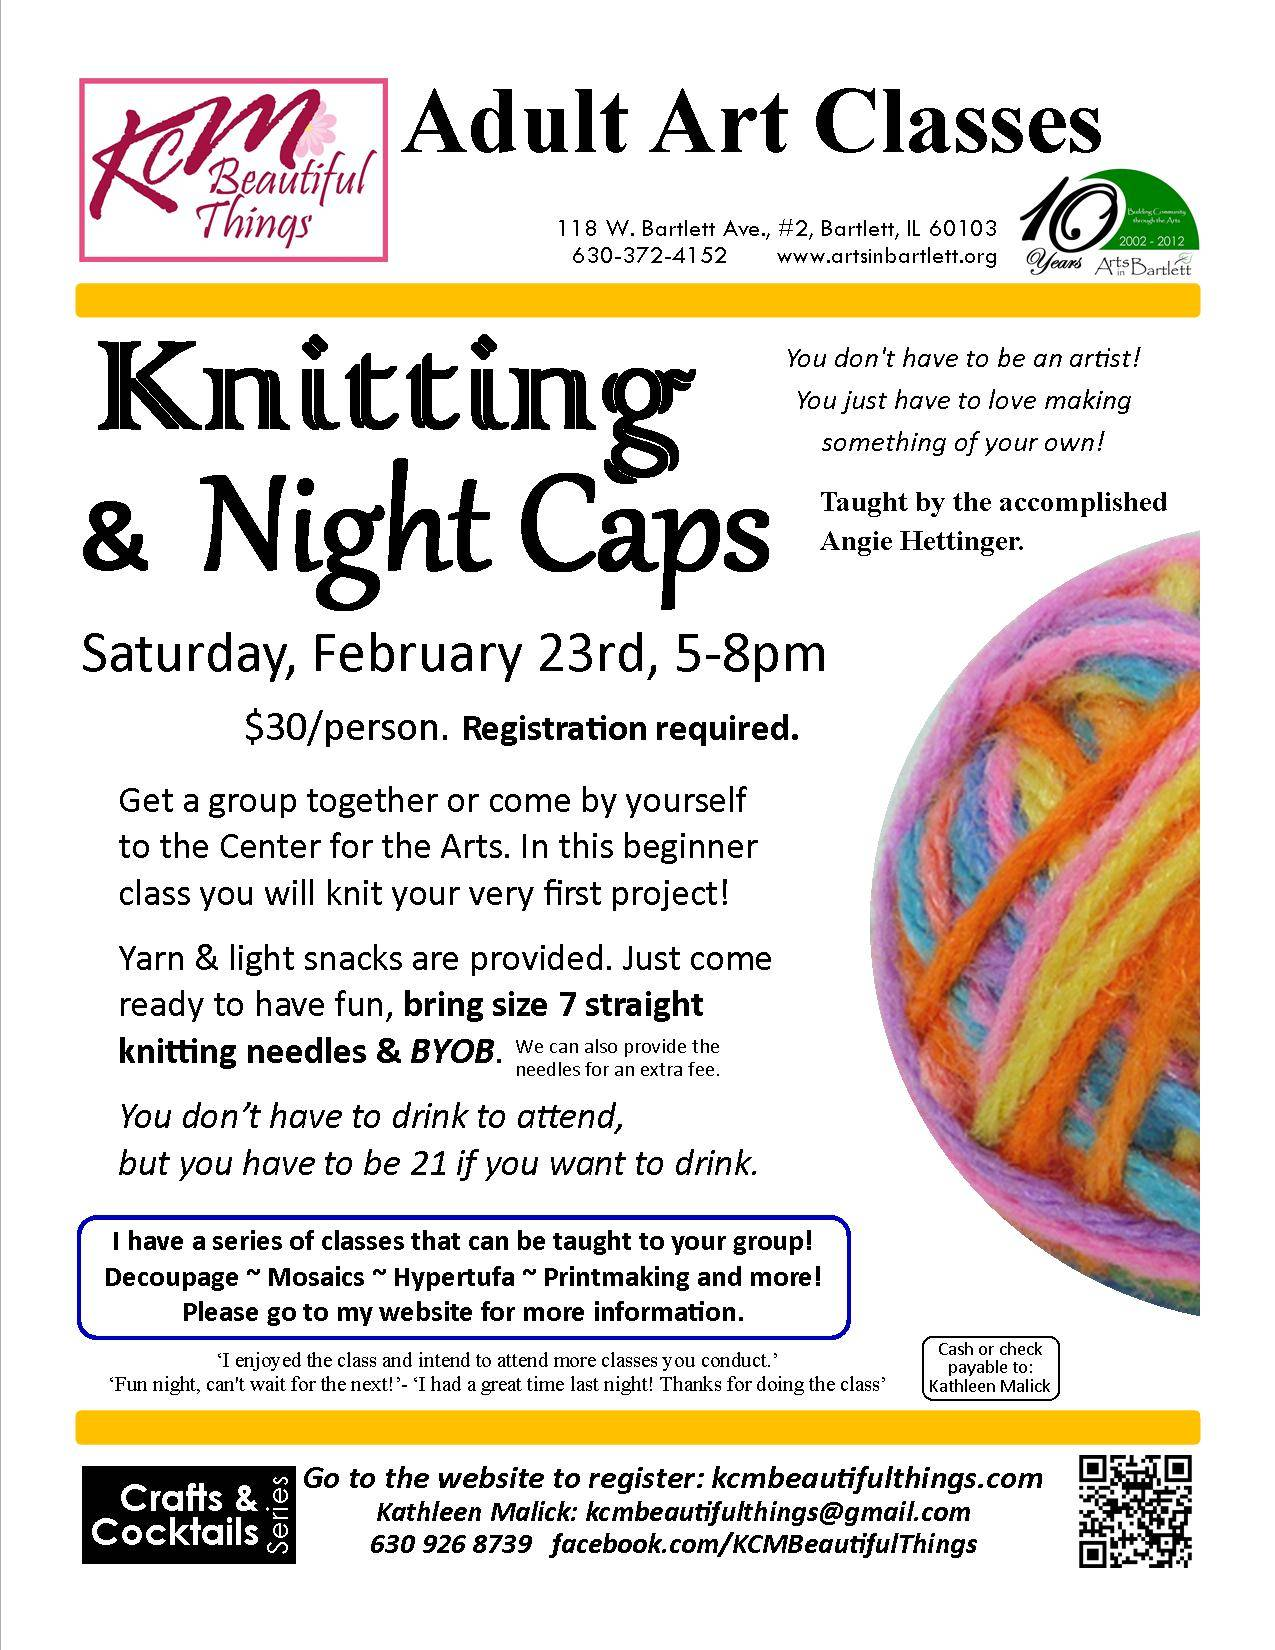 Knitting & Night Caps 2/23/13, 5-8pm. $30/person.